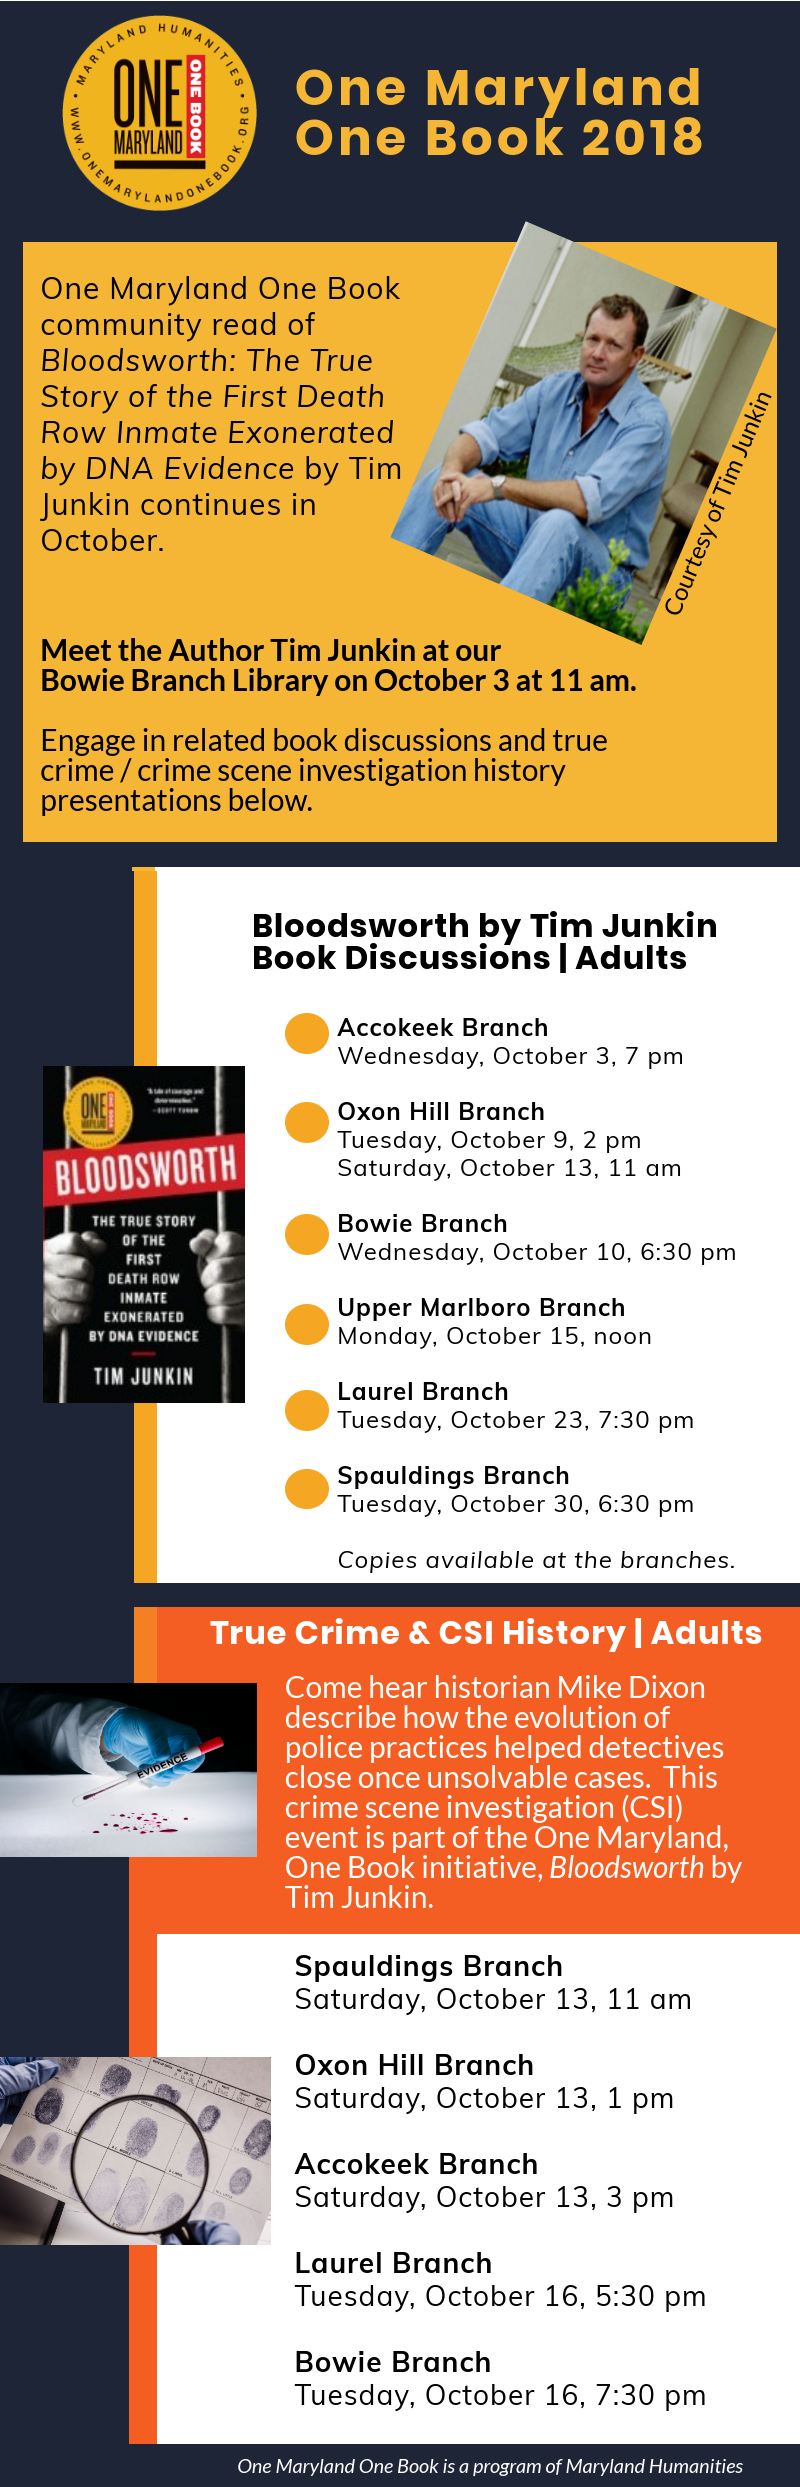 One Maryland One Book Bloodsworth by Tim Junkin infographic